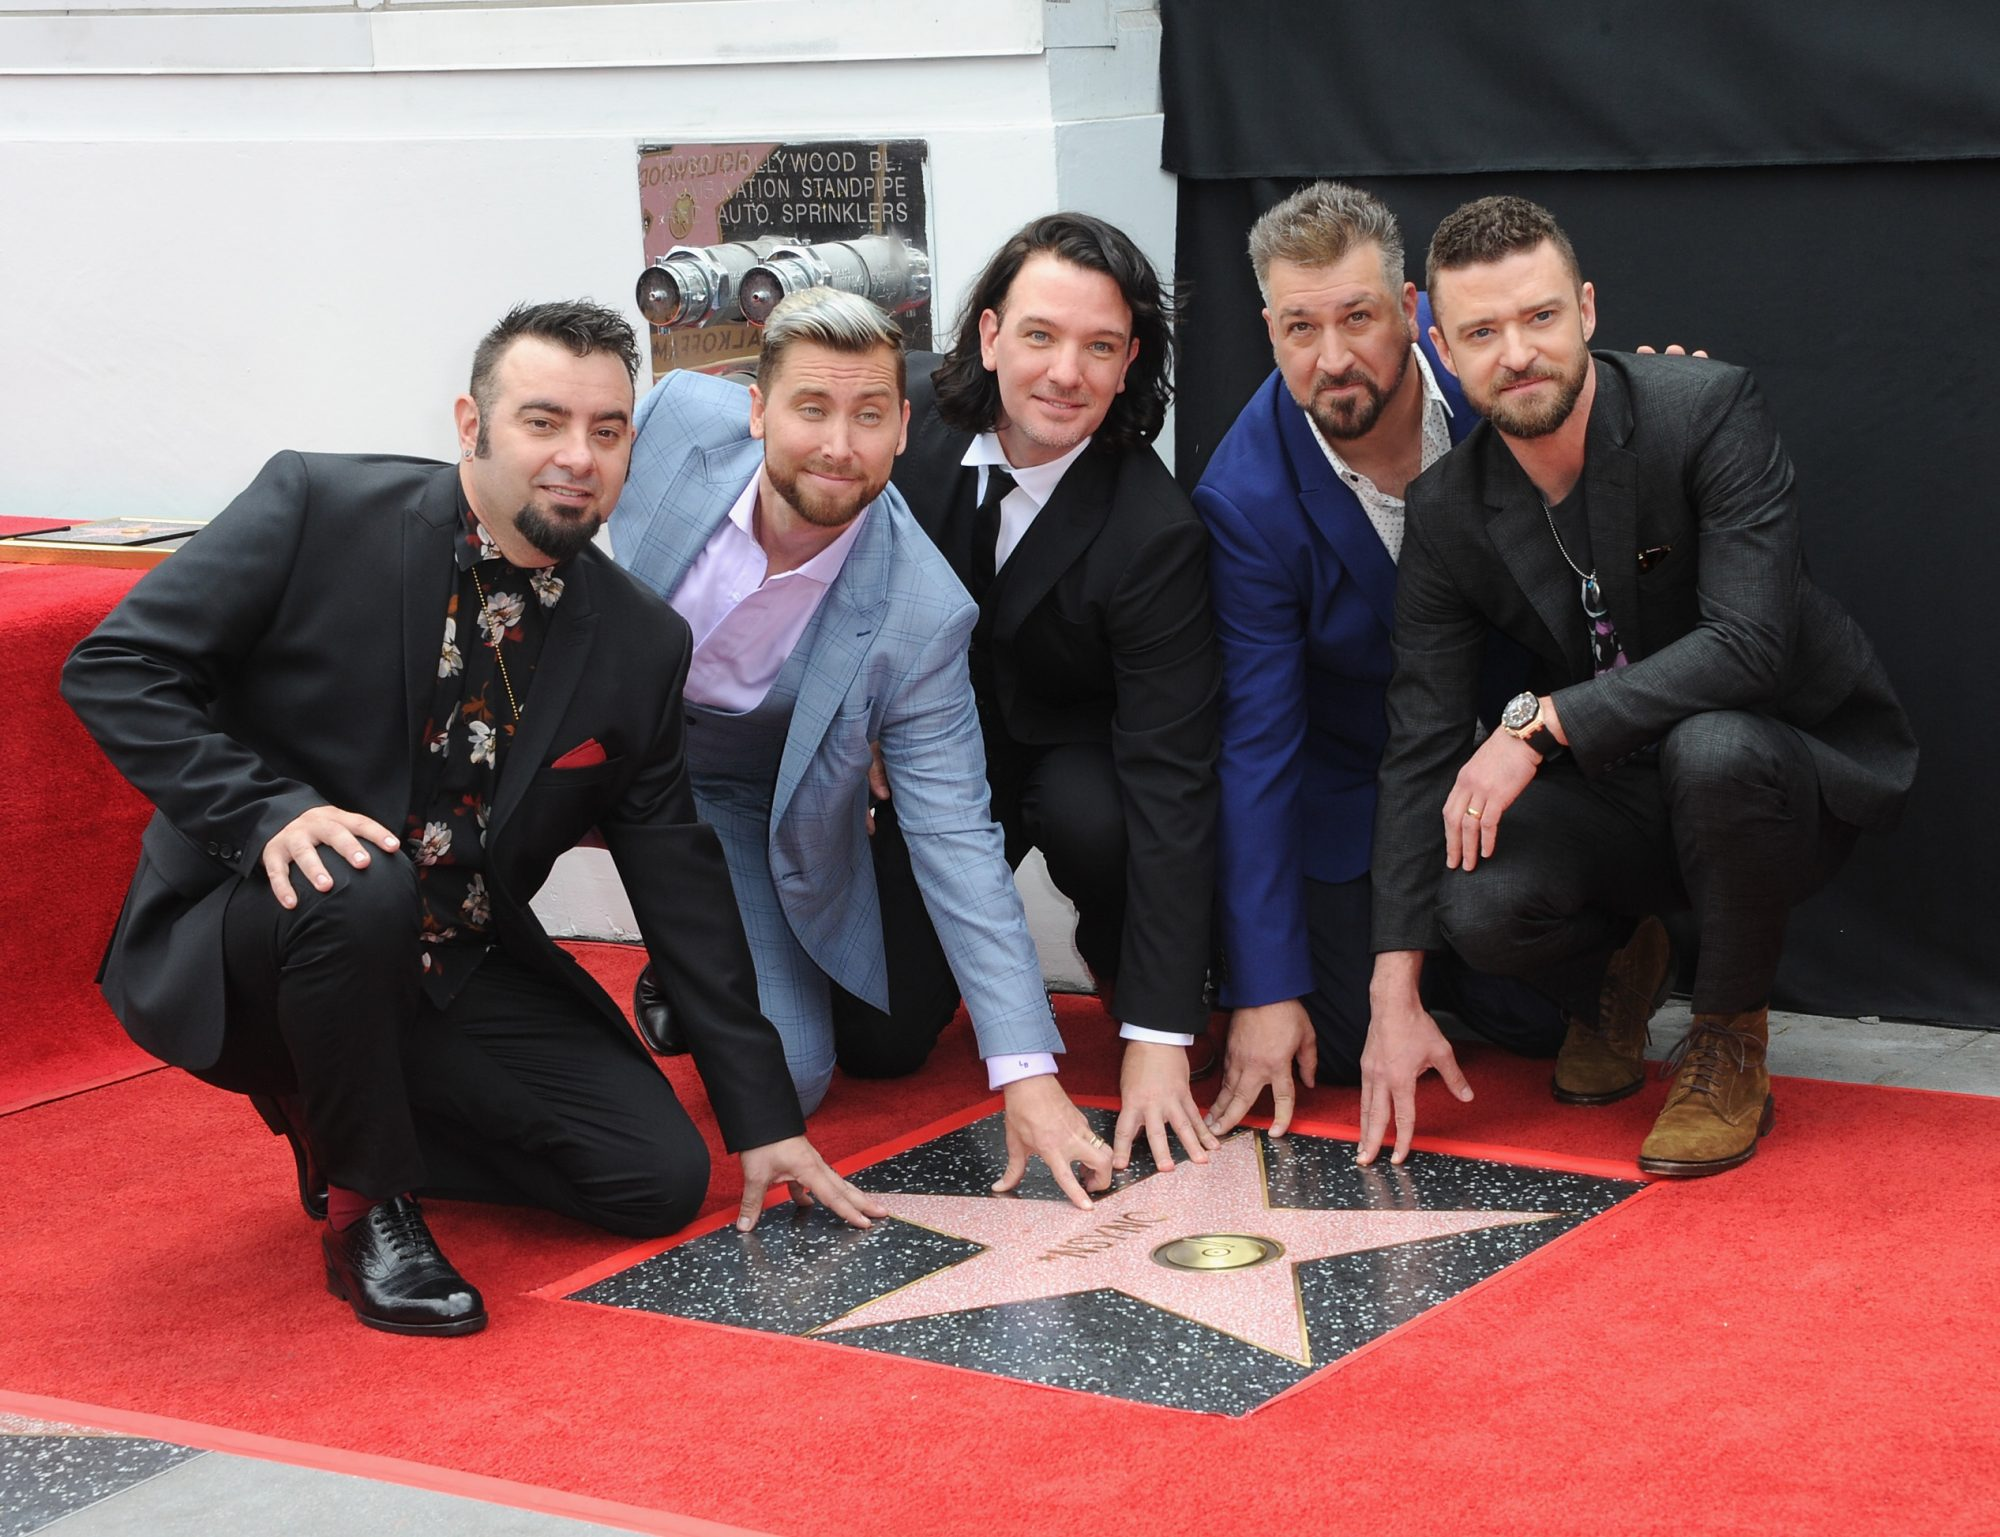 'NSYNC Walk of Fame Ceremony